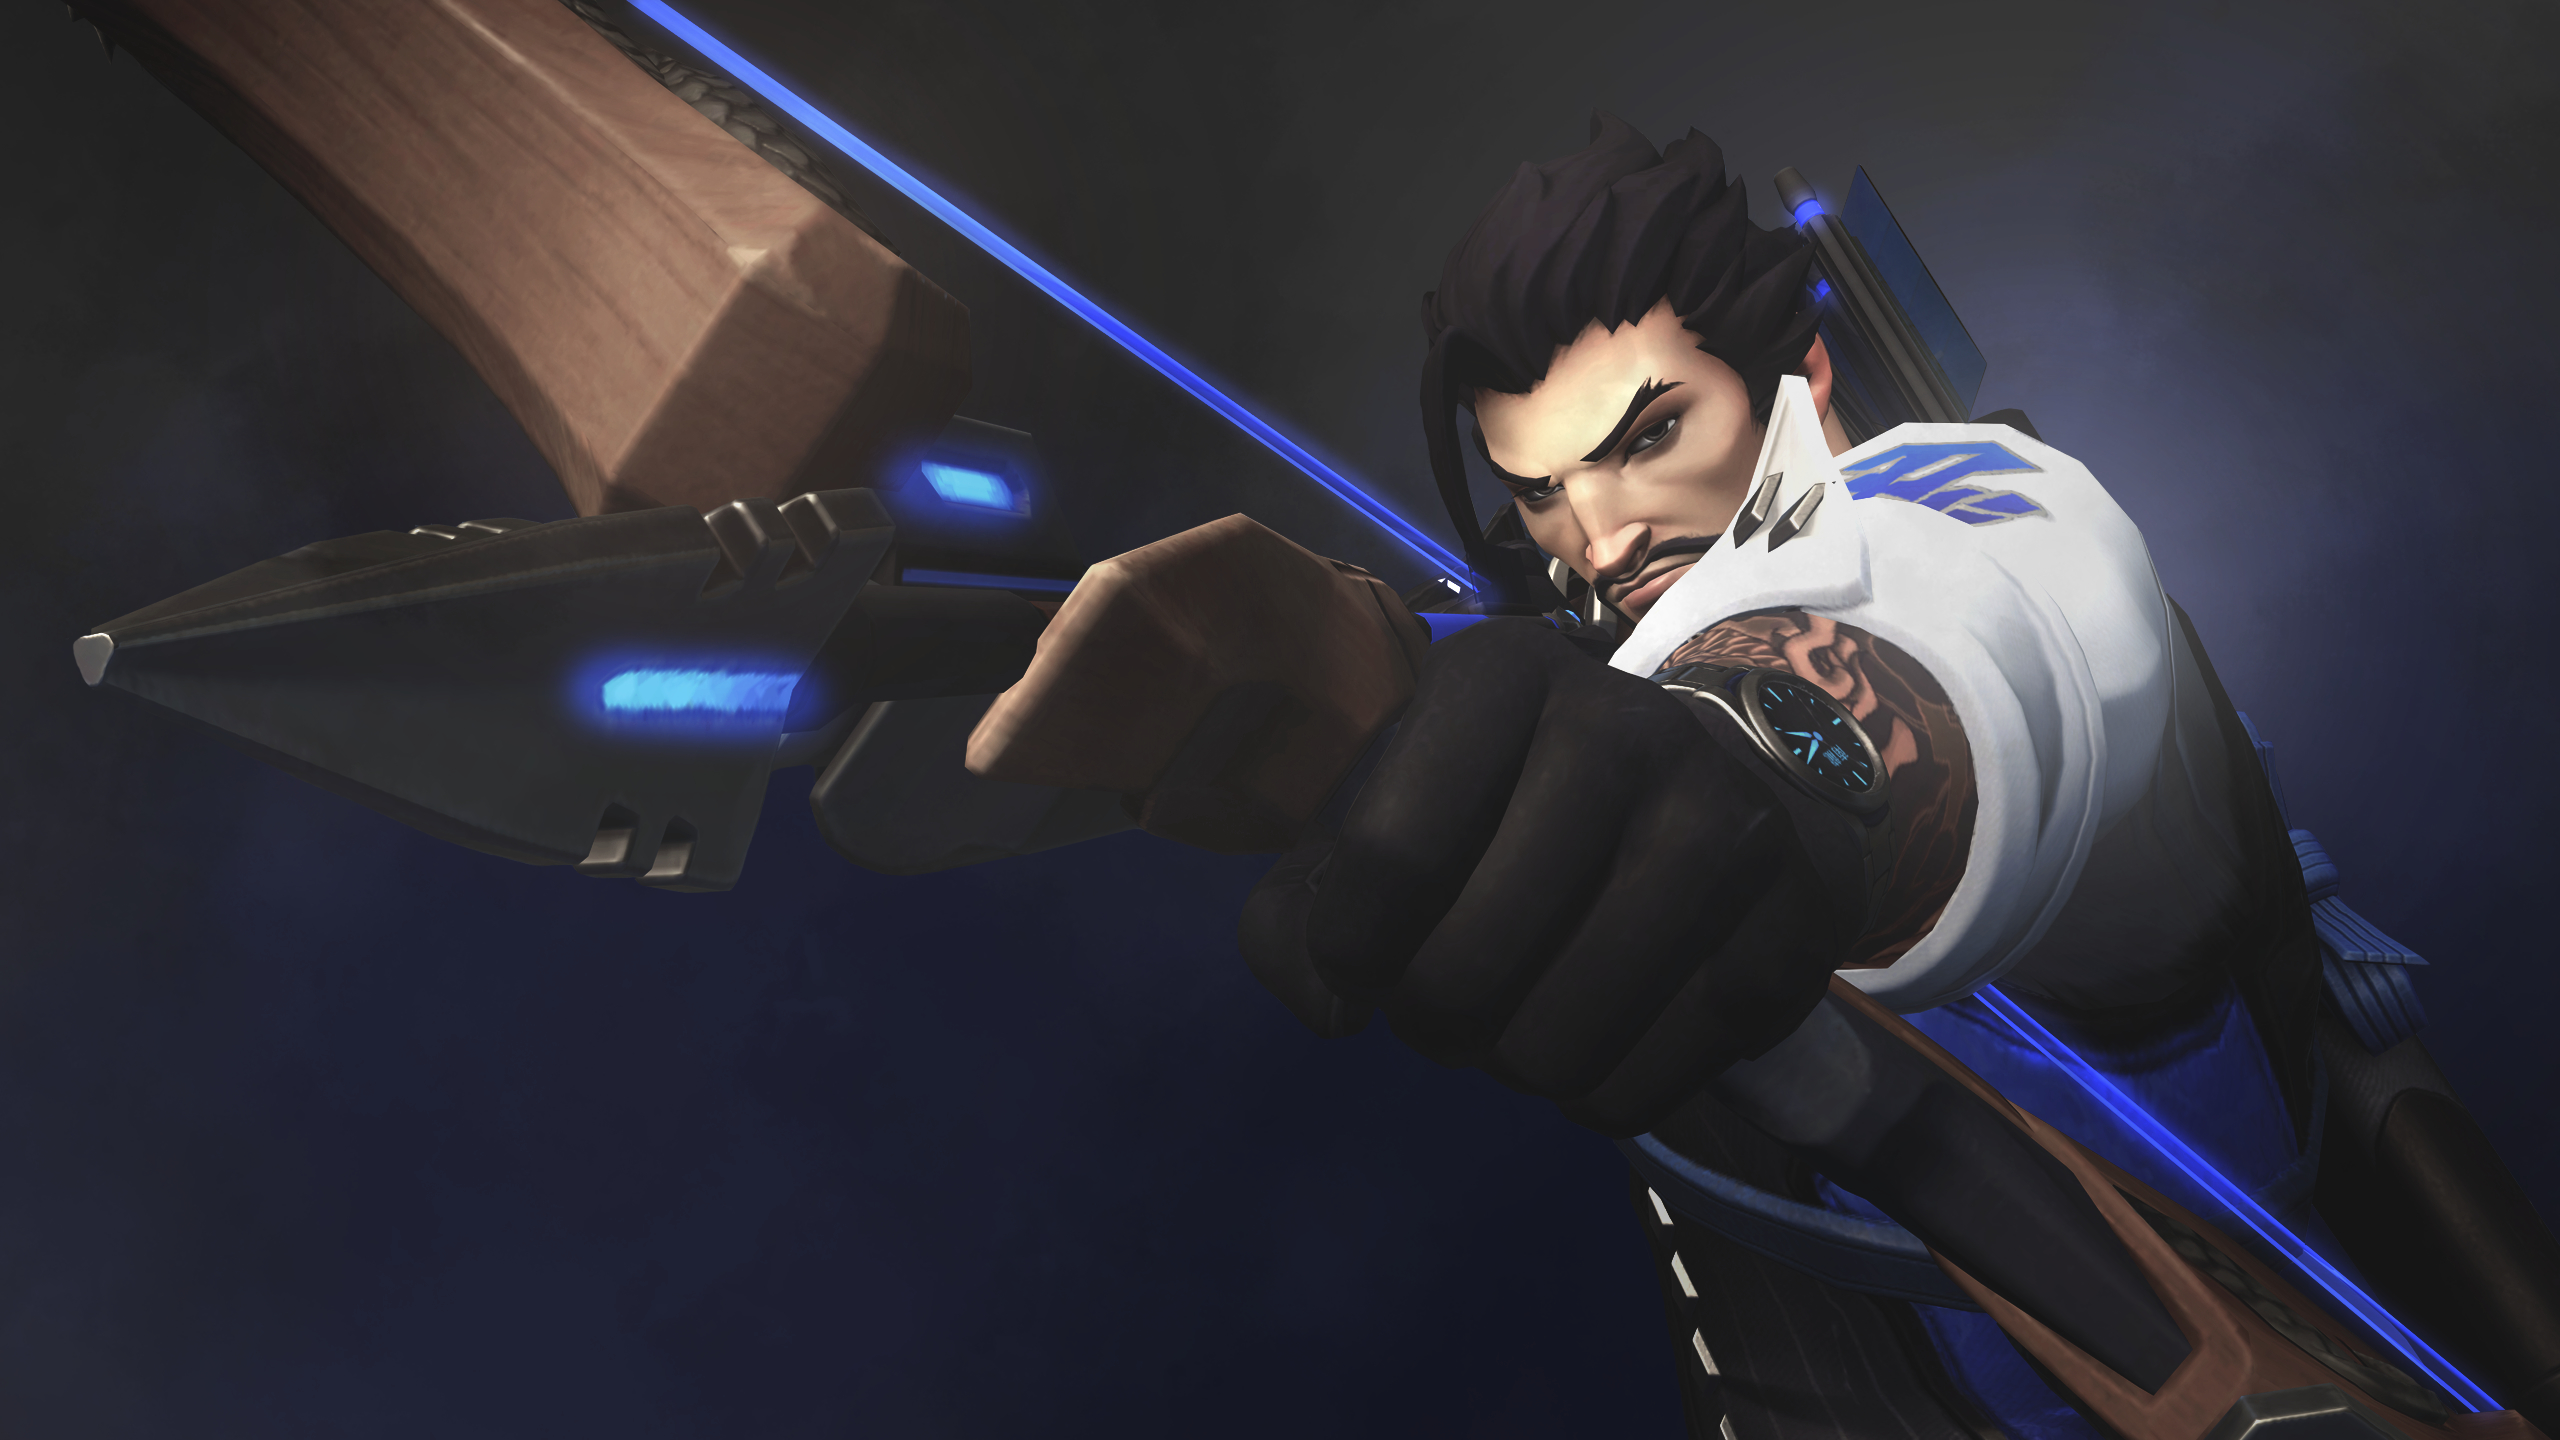 Hanzo Overwatch Wallpaper Hd Games 4k Wallpapers Images